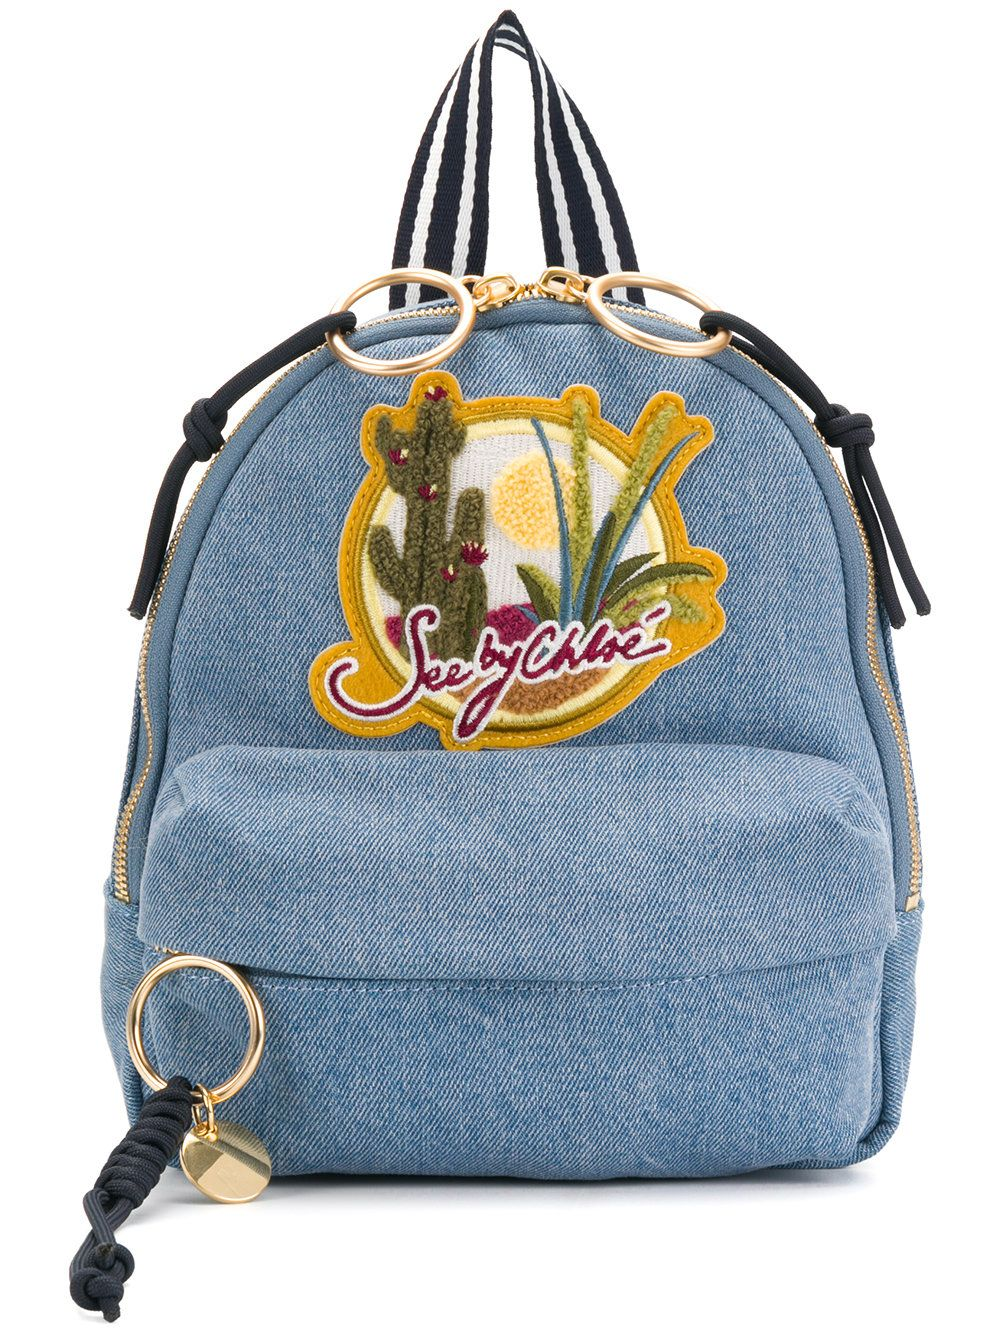 5406c718b7f99 SEE BY CHLOÉ .  seebychloé  bags  denim  backpacks